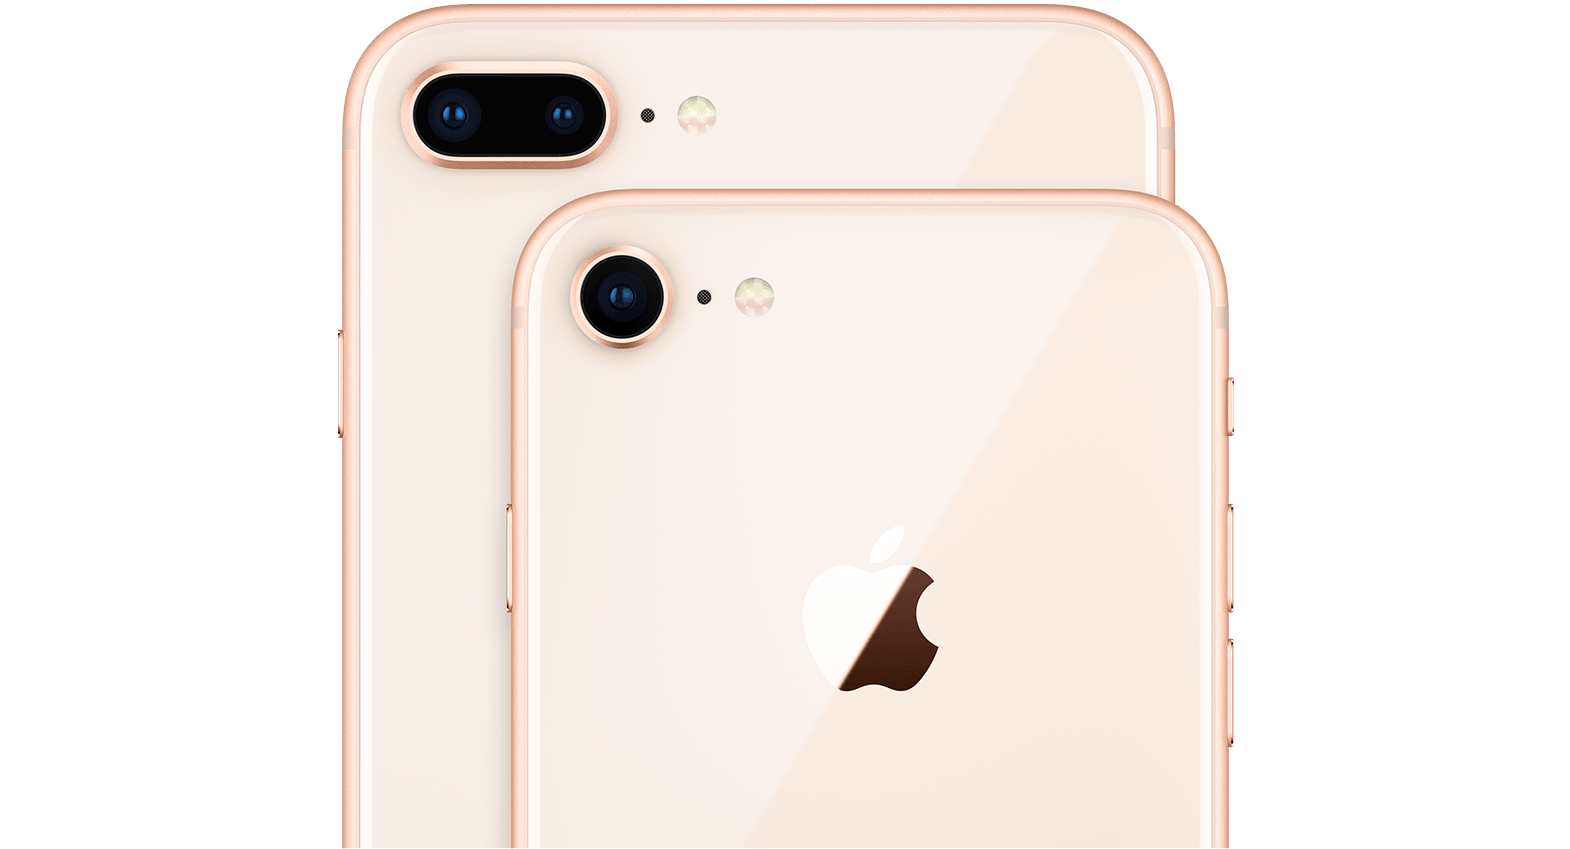 Two iPhone 8s showing cameras